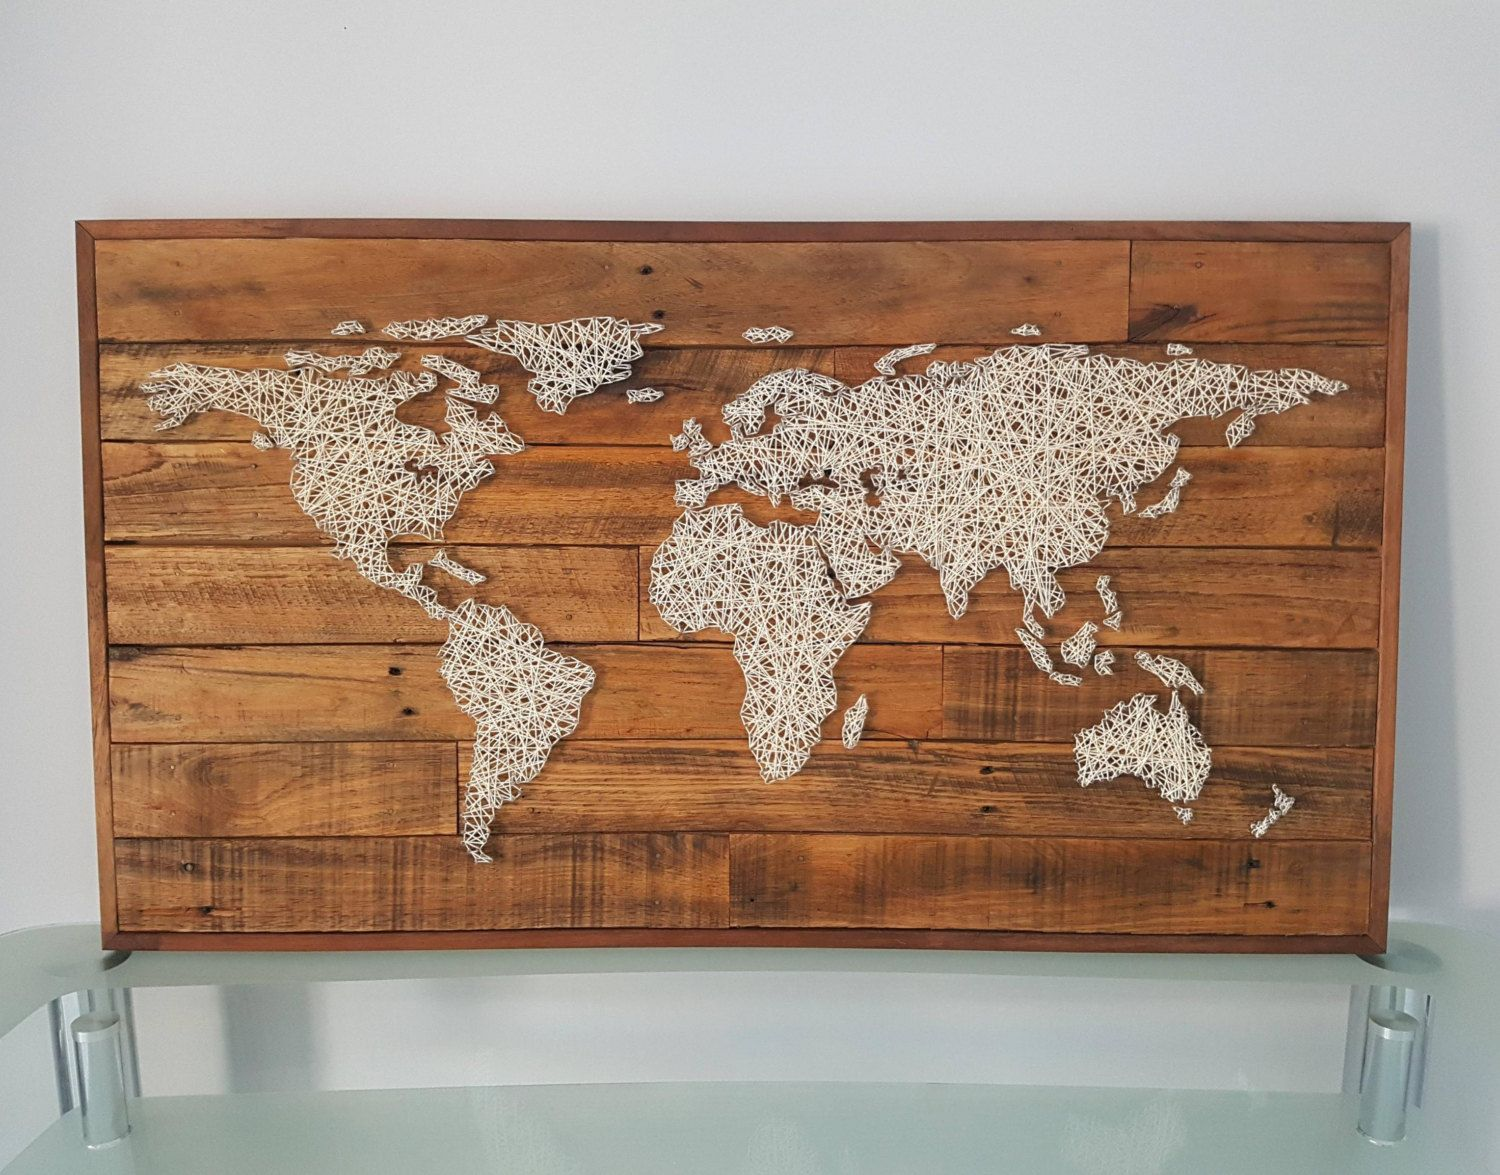 World map string art 1066 nails approx 115m of string dimensions items similar to world map string art on etsy gumiabroncs Gallery